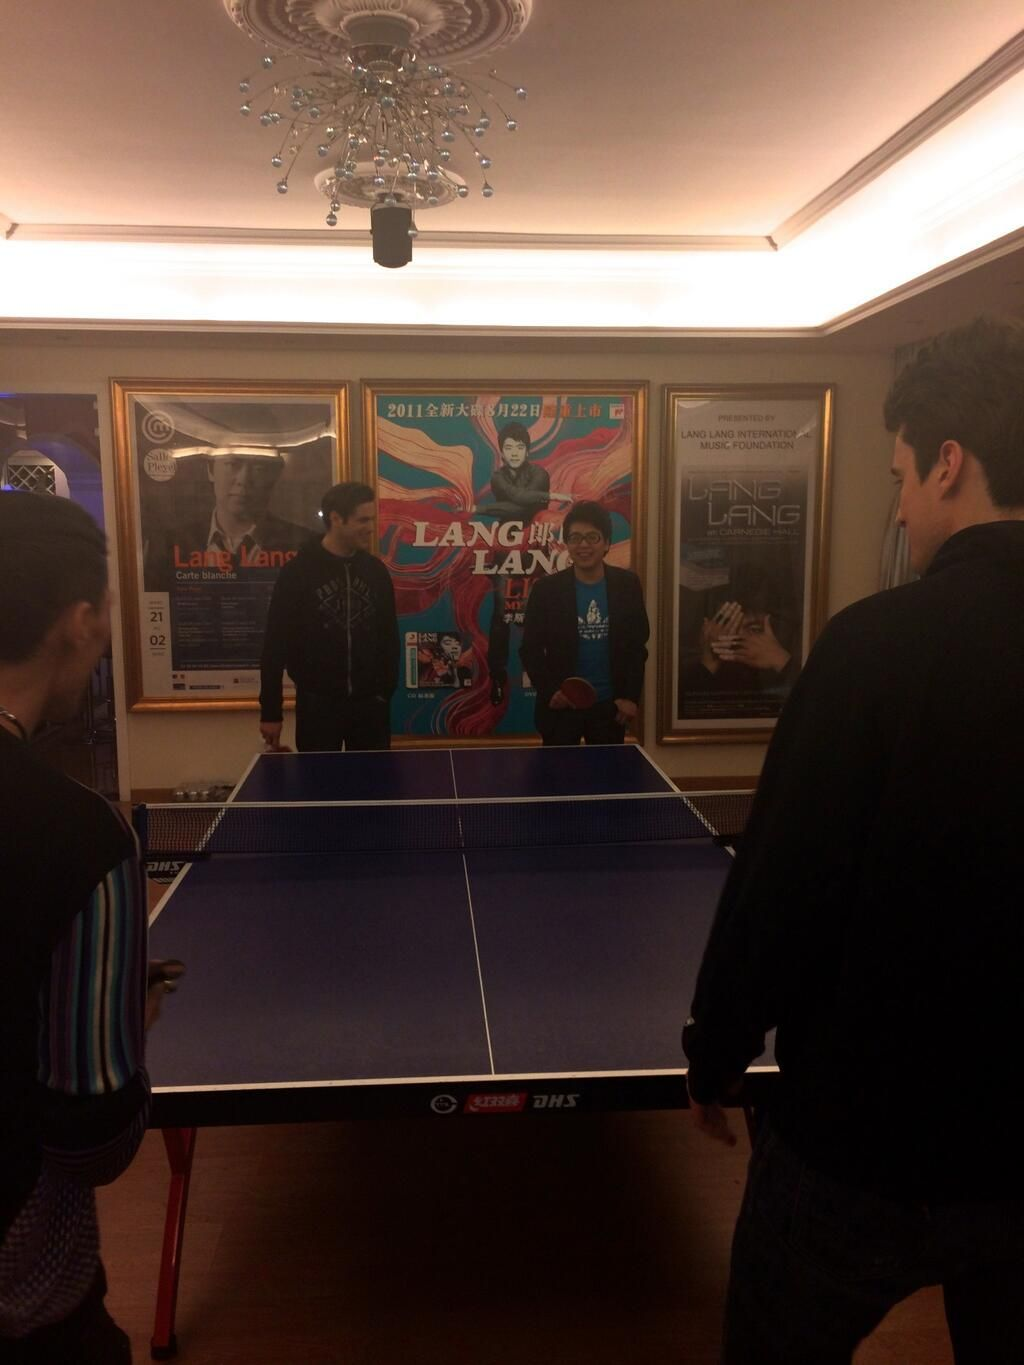 Playing PingPong against lang_lang yesterday was a real